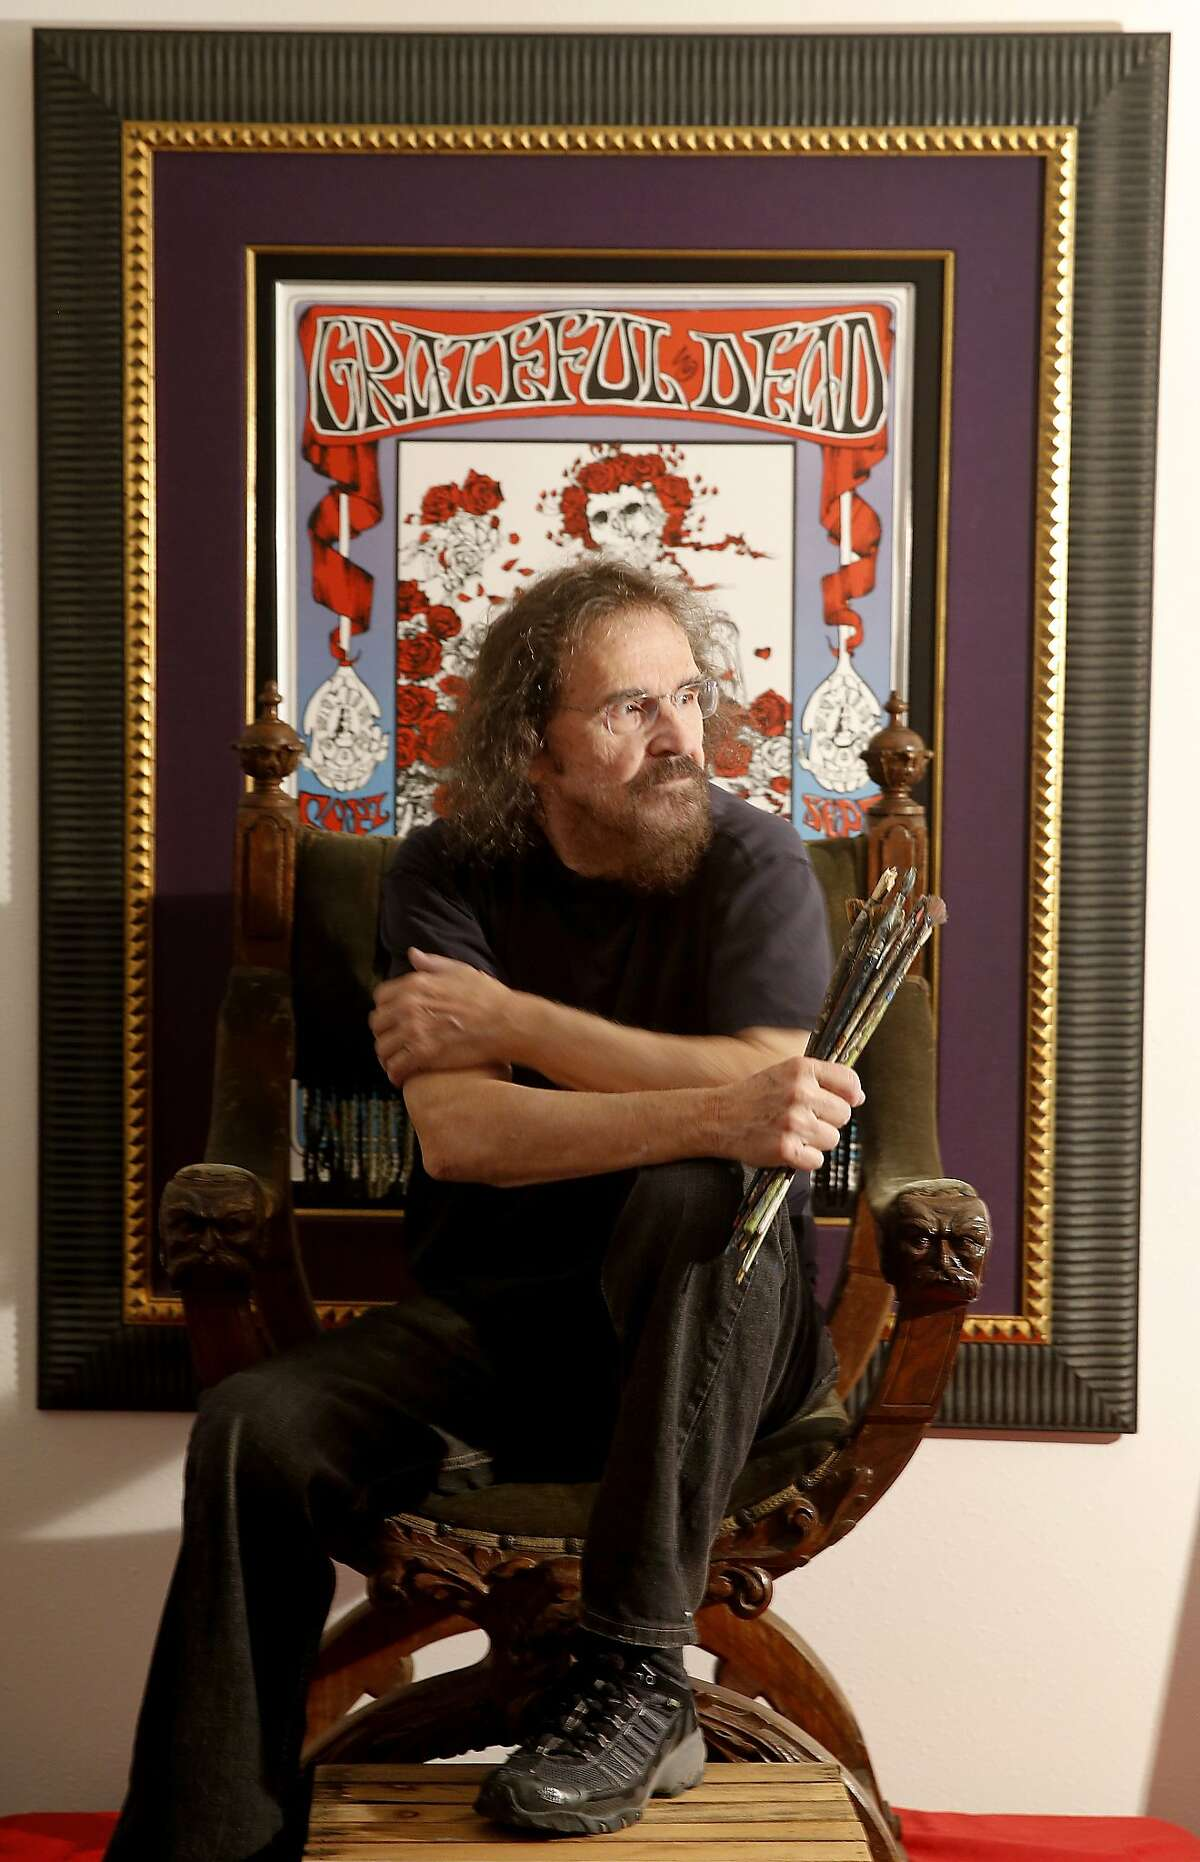 """Stanley """"Mouse"""" Miller poses in front of his famous Avalon ballroom poster from 1966 in his Sebastopol, Calif. studio. Artist Stanley """"Mouse"""" Miller is one of the most famous poster artists of the San Francisco rock era. He is out with a new art book and a 50th anniversary gallery show."""